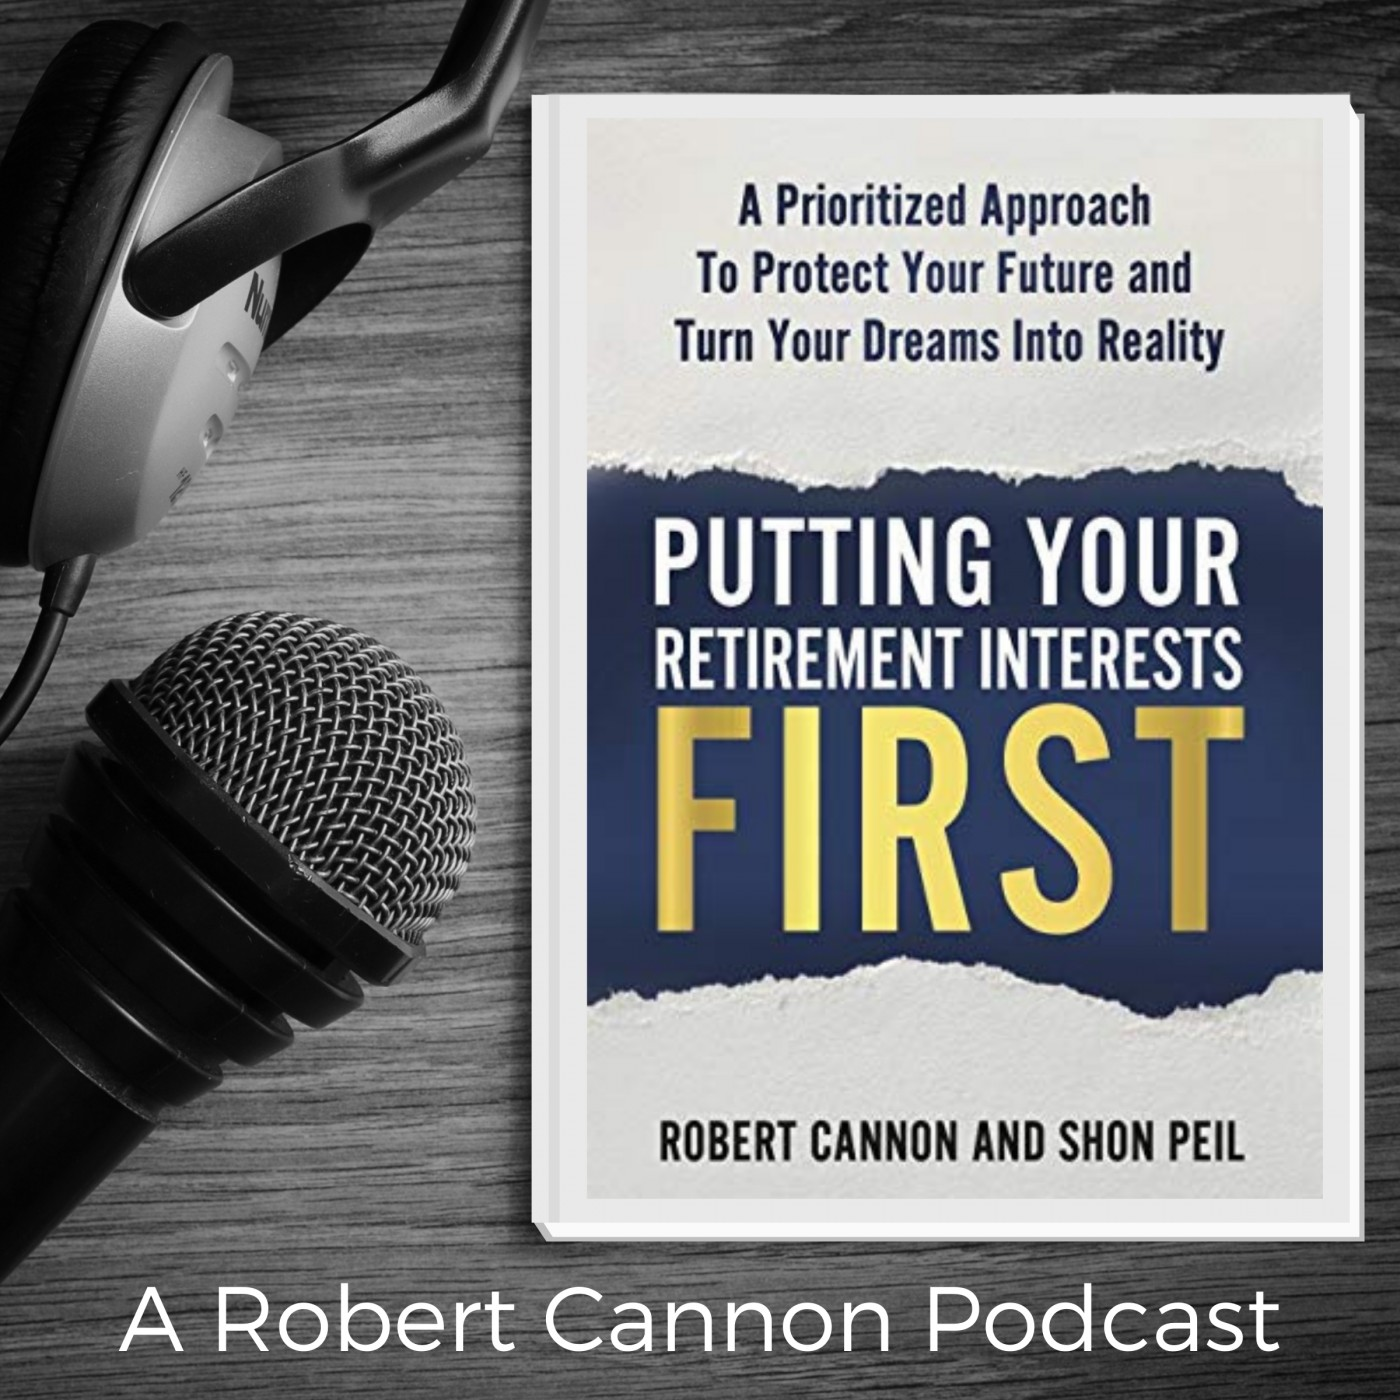 Putting Your Retirement Interests First